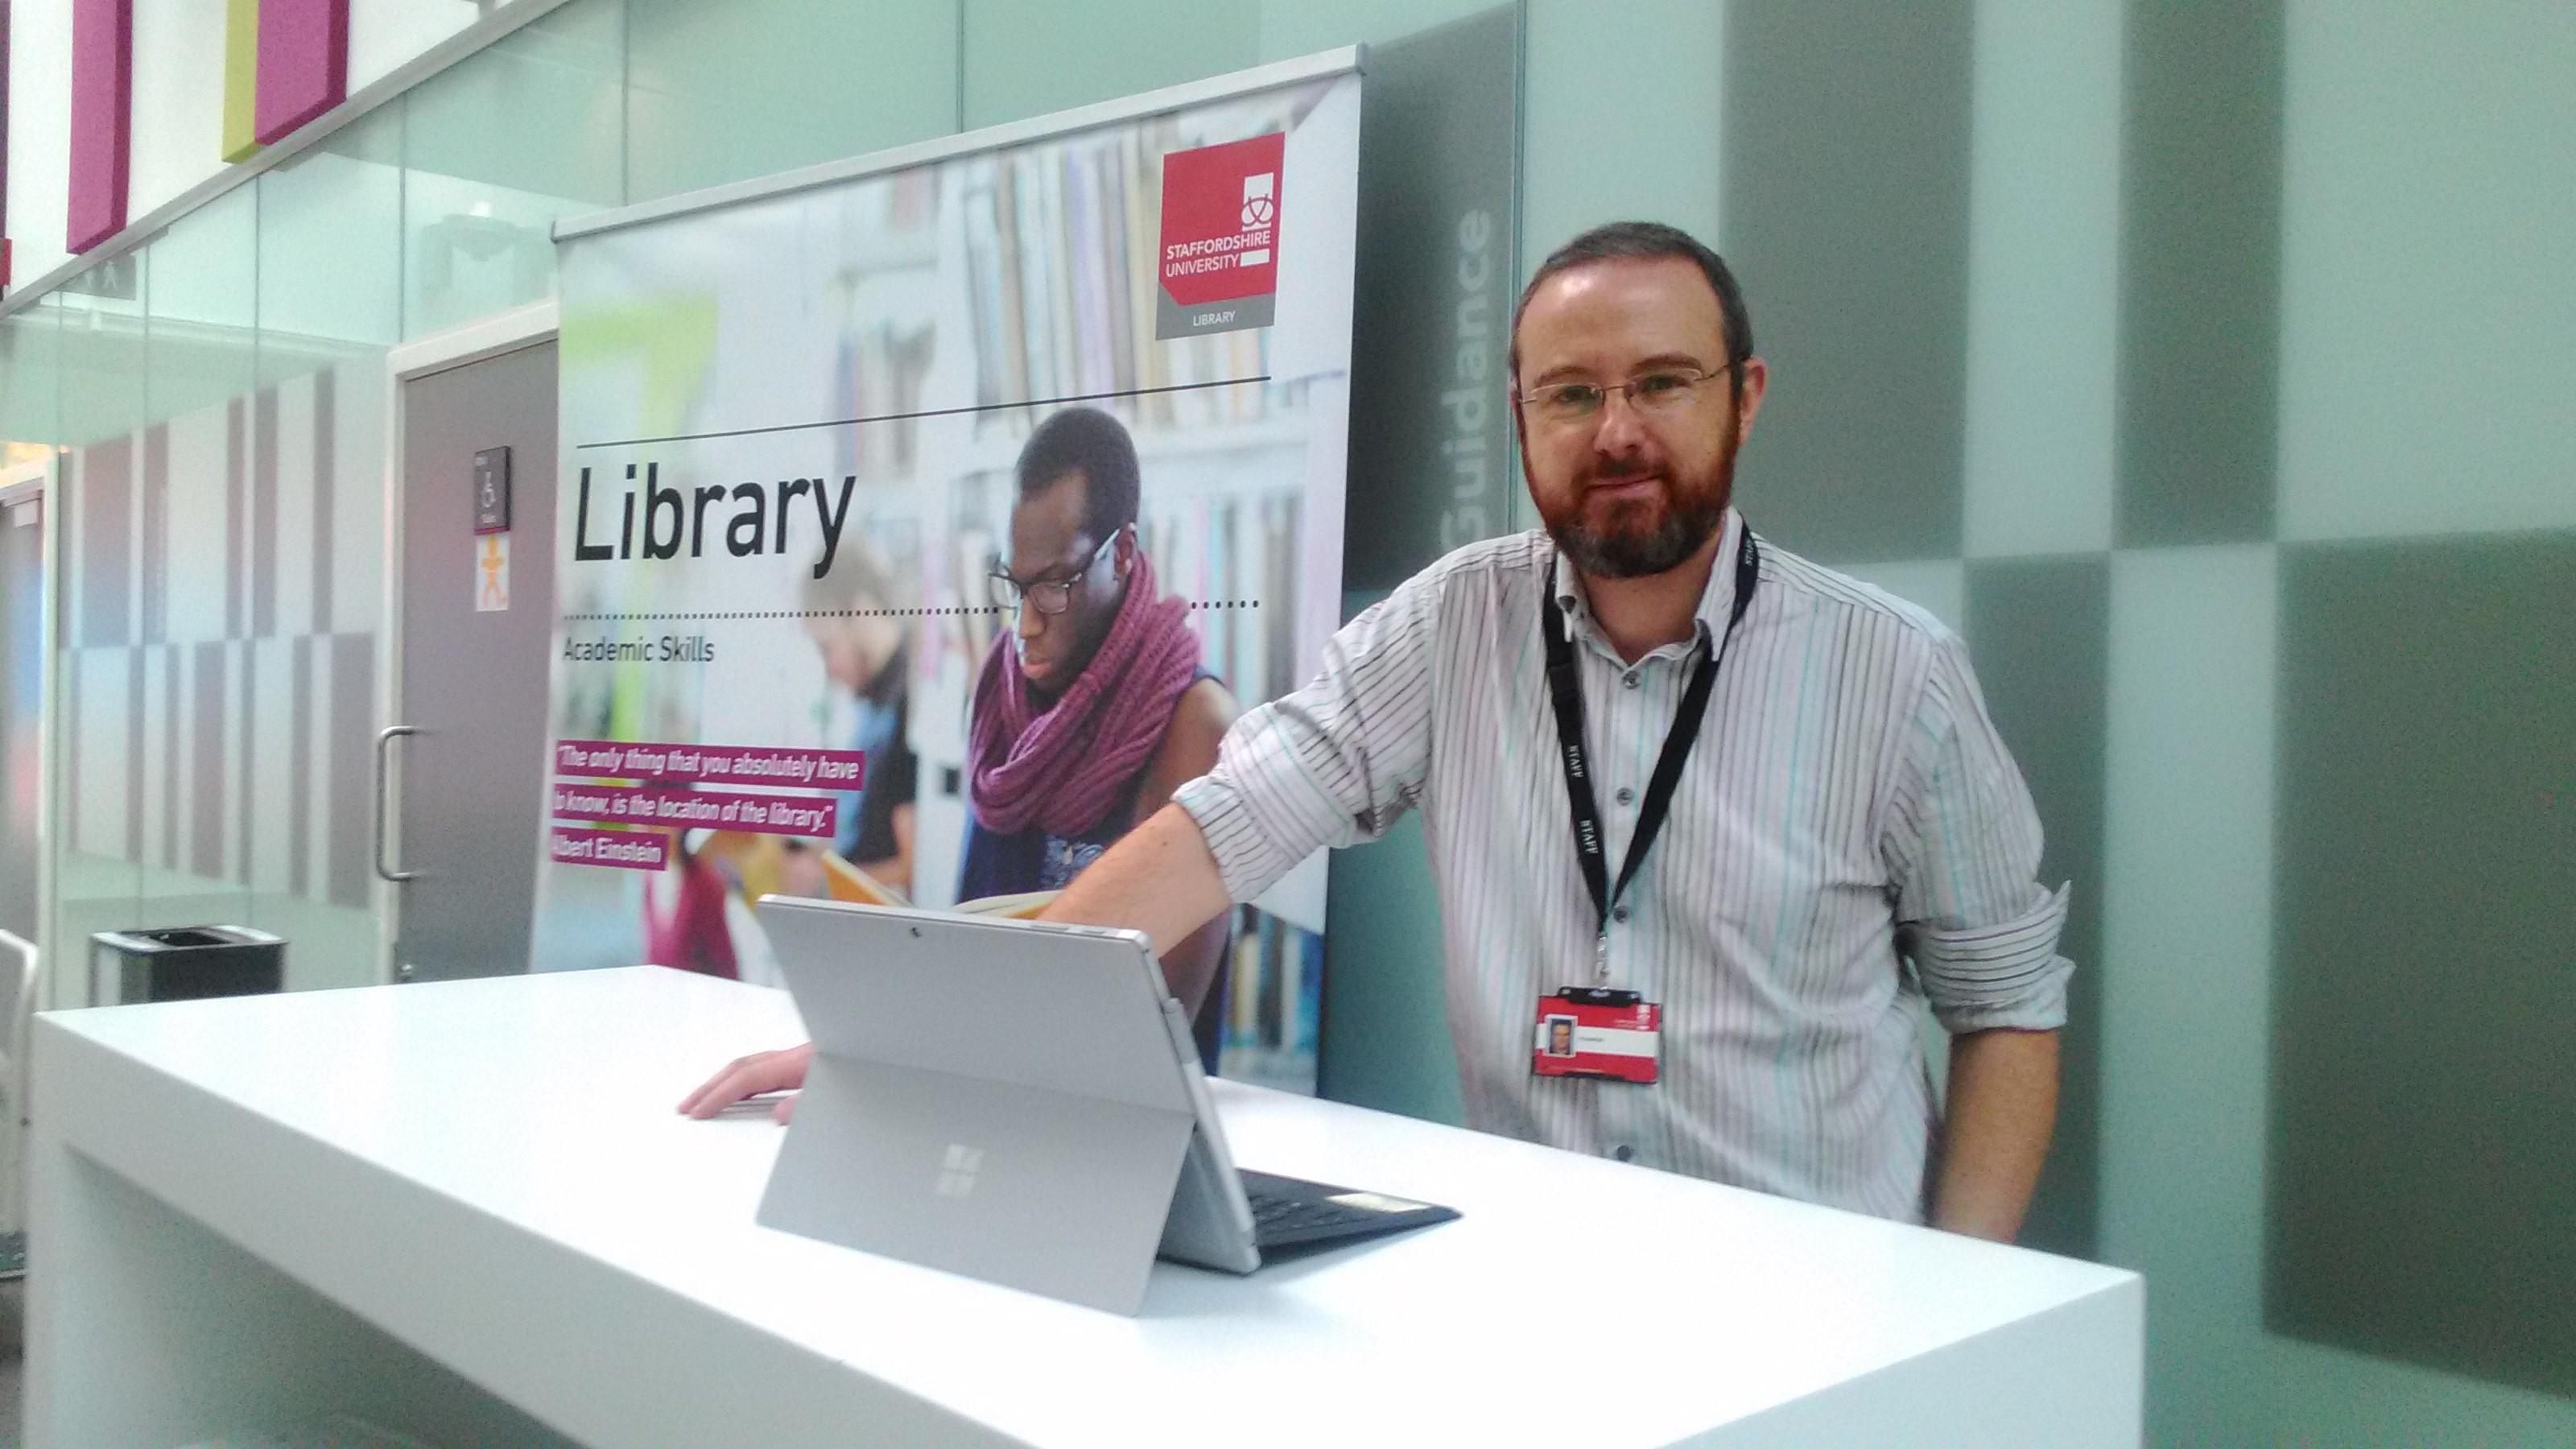 Photos of Library staff n the Student Hub